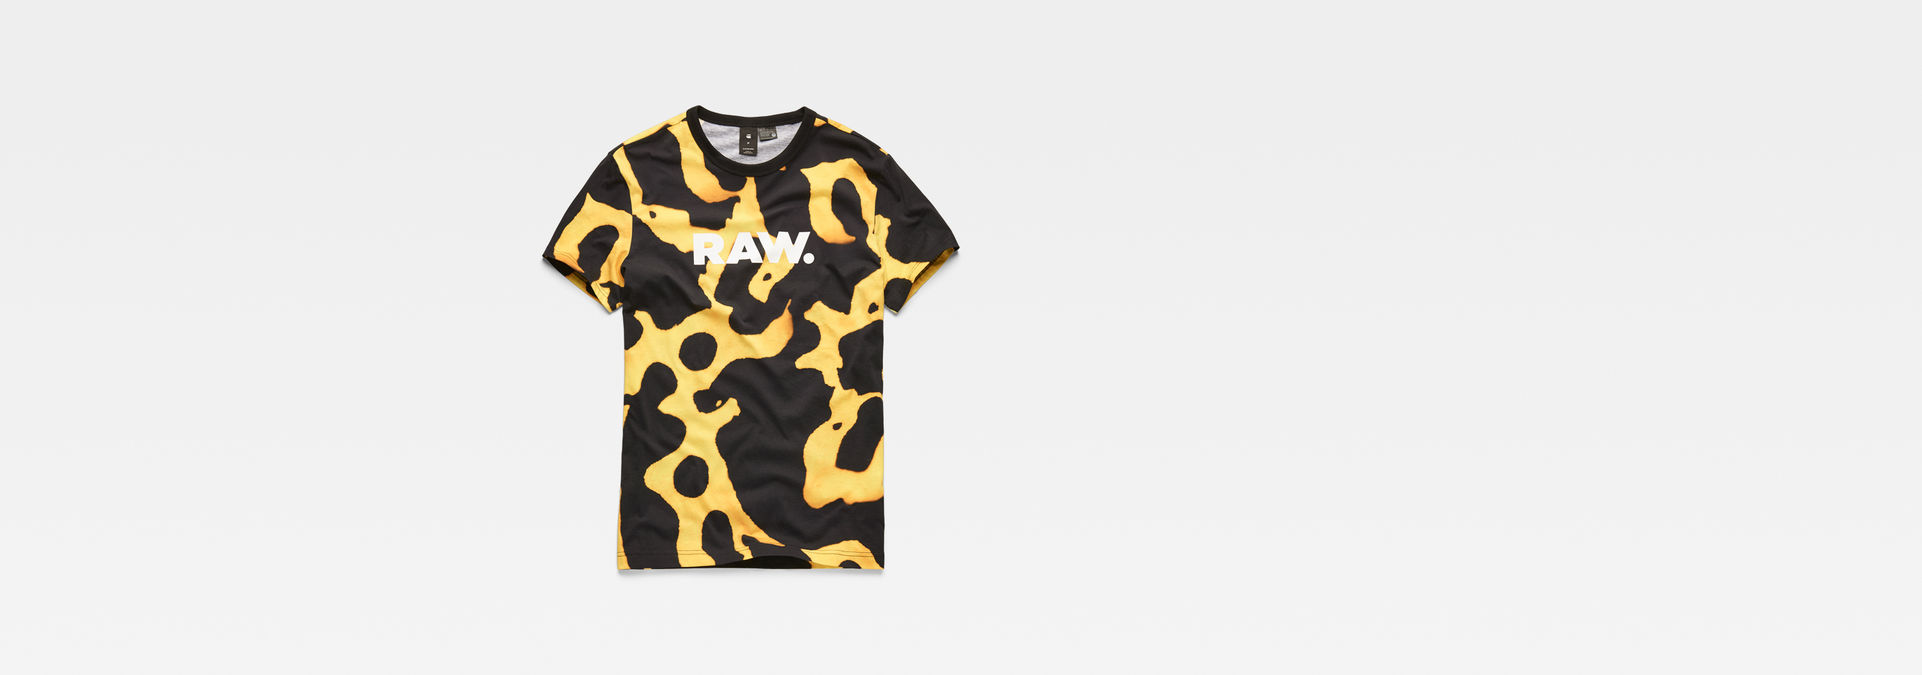 a594cd5bb ... G-Star RAW® Fian Bumble Frog Patterned T-Shirt Yellow flat front ...